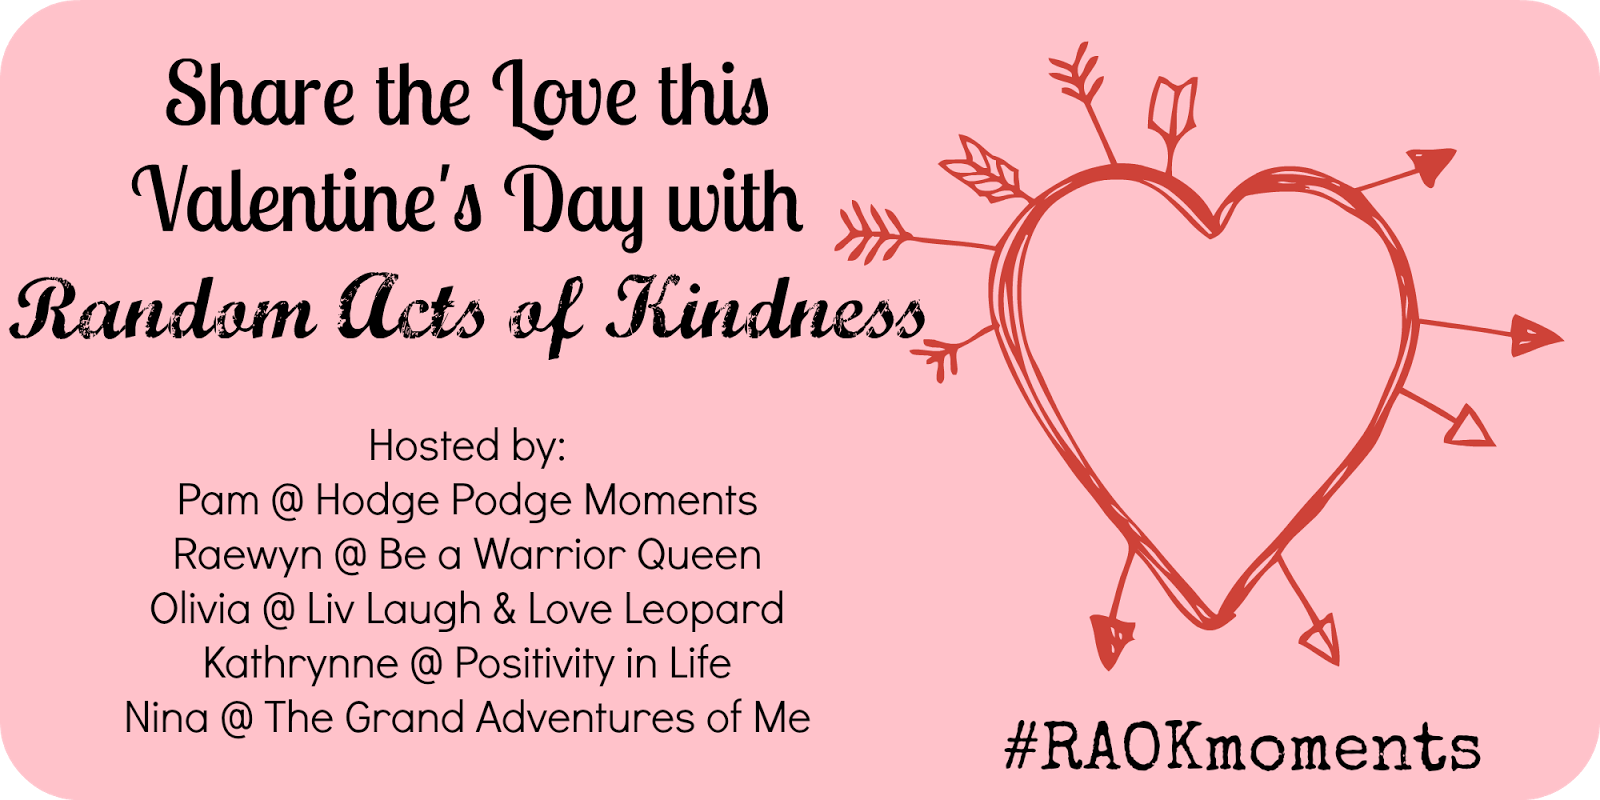 Share the Love with #RAOKmoments